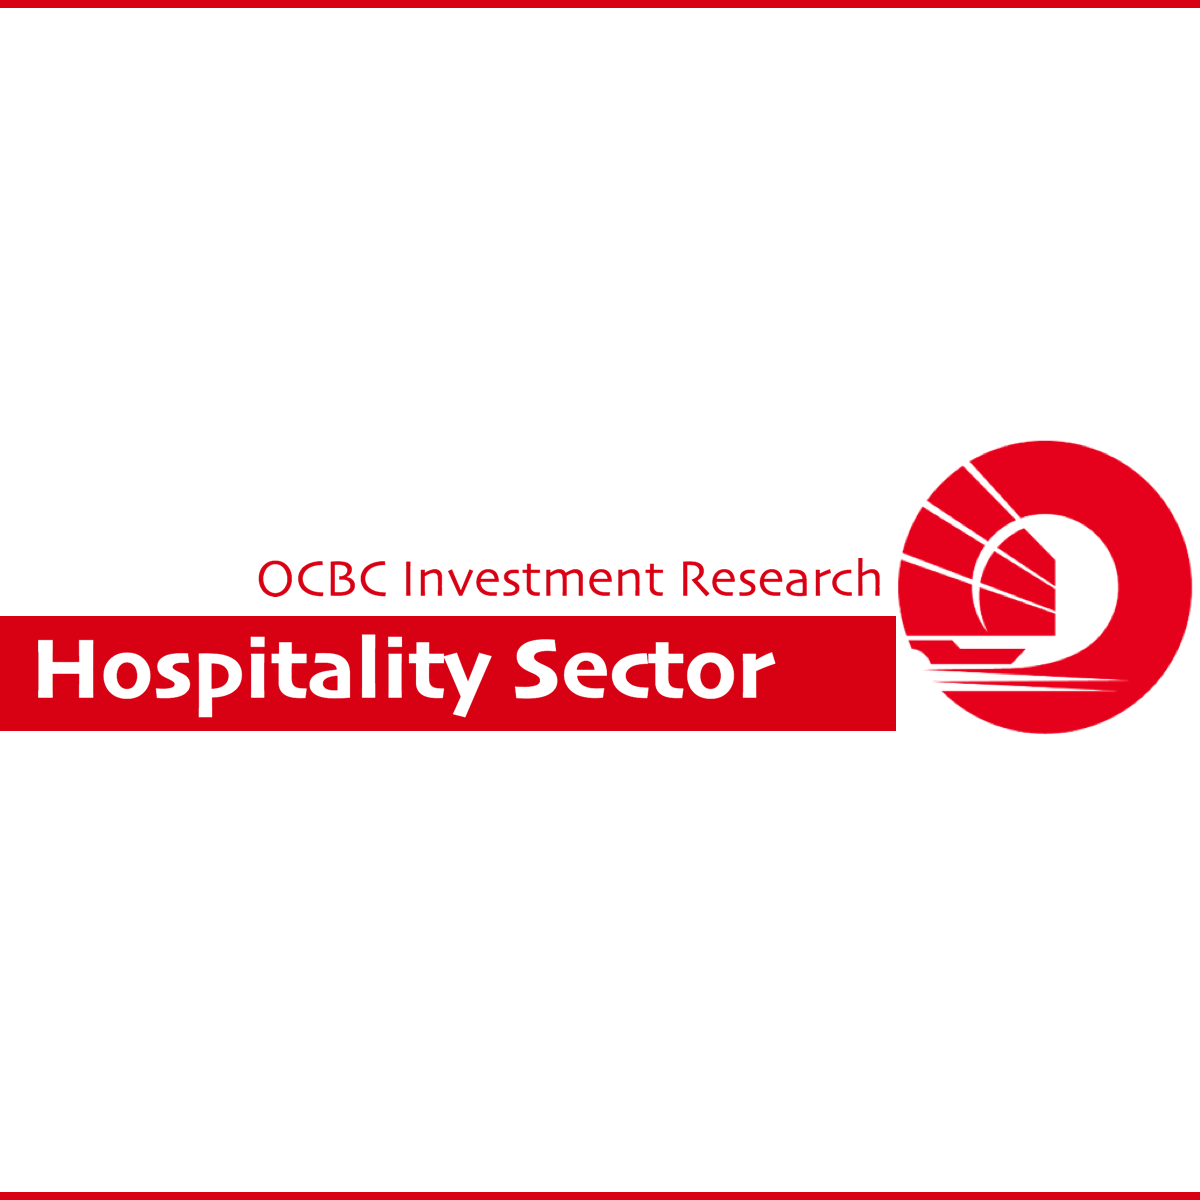 SG Hospitality - OCBC Investment 2017-02-08: OUEHT is our pick